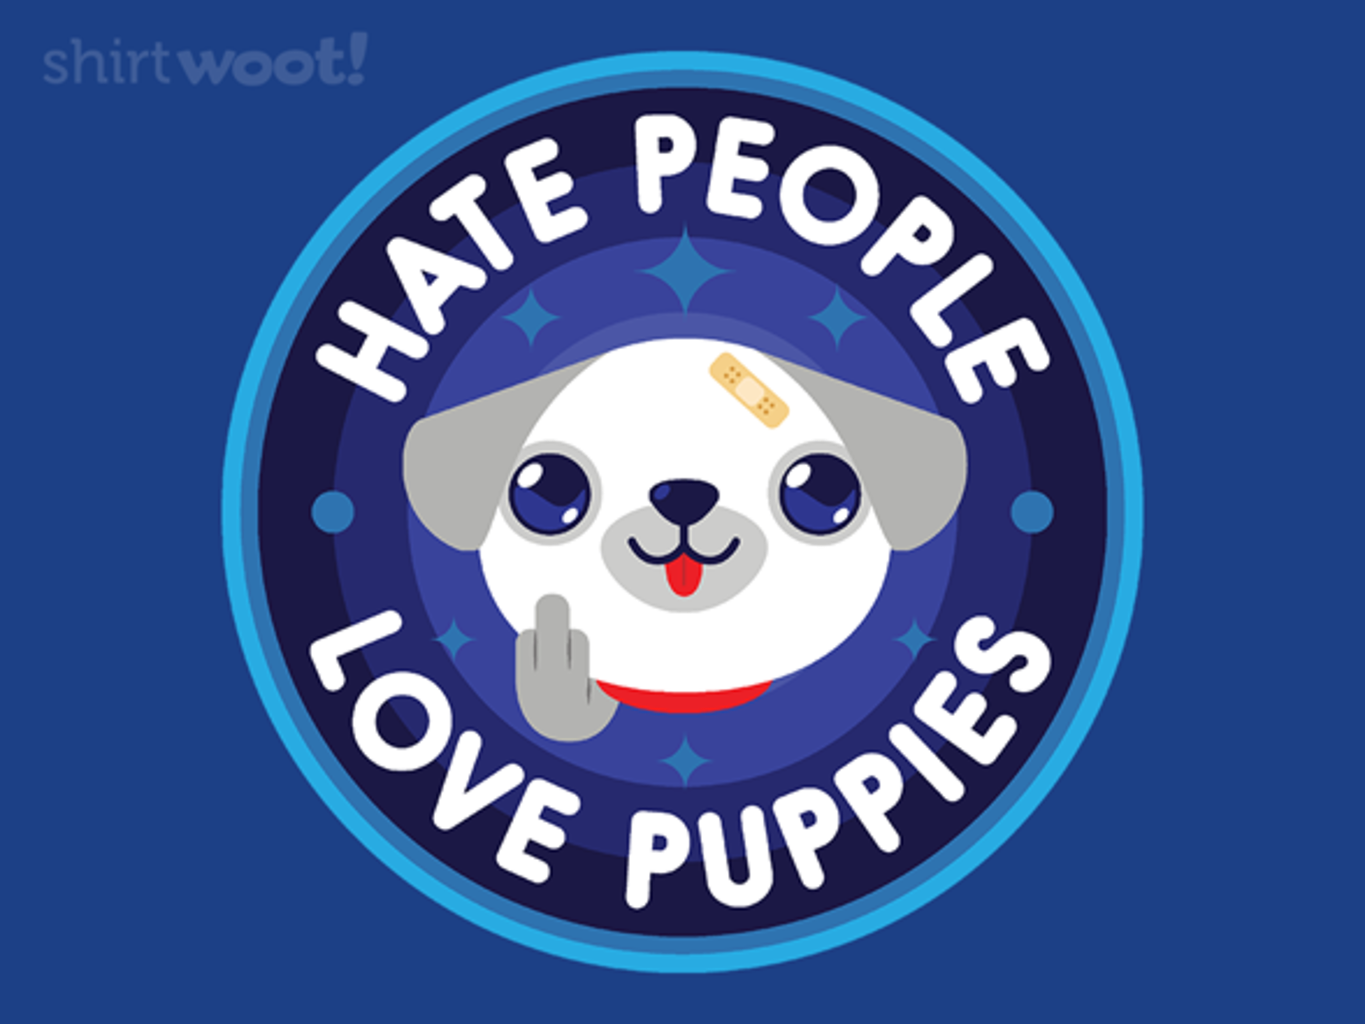 Woot!: Love Puppies